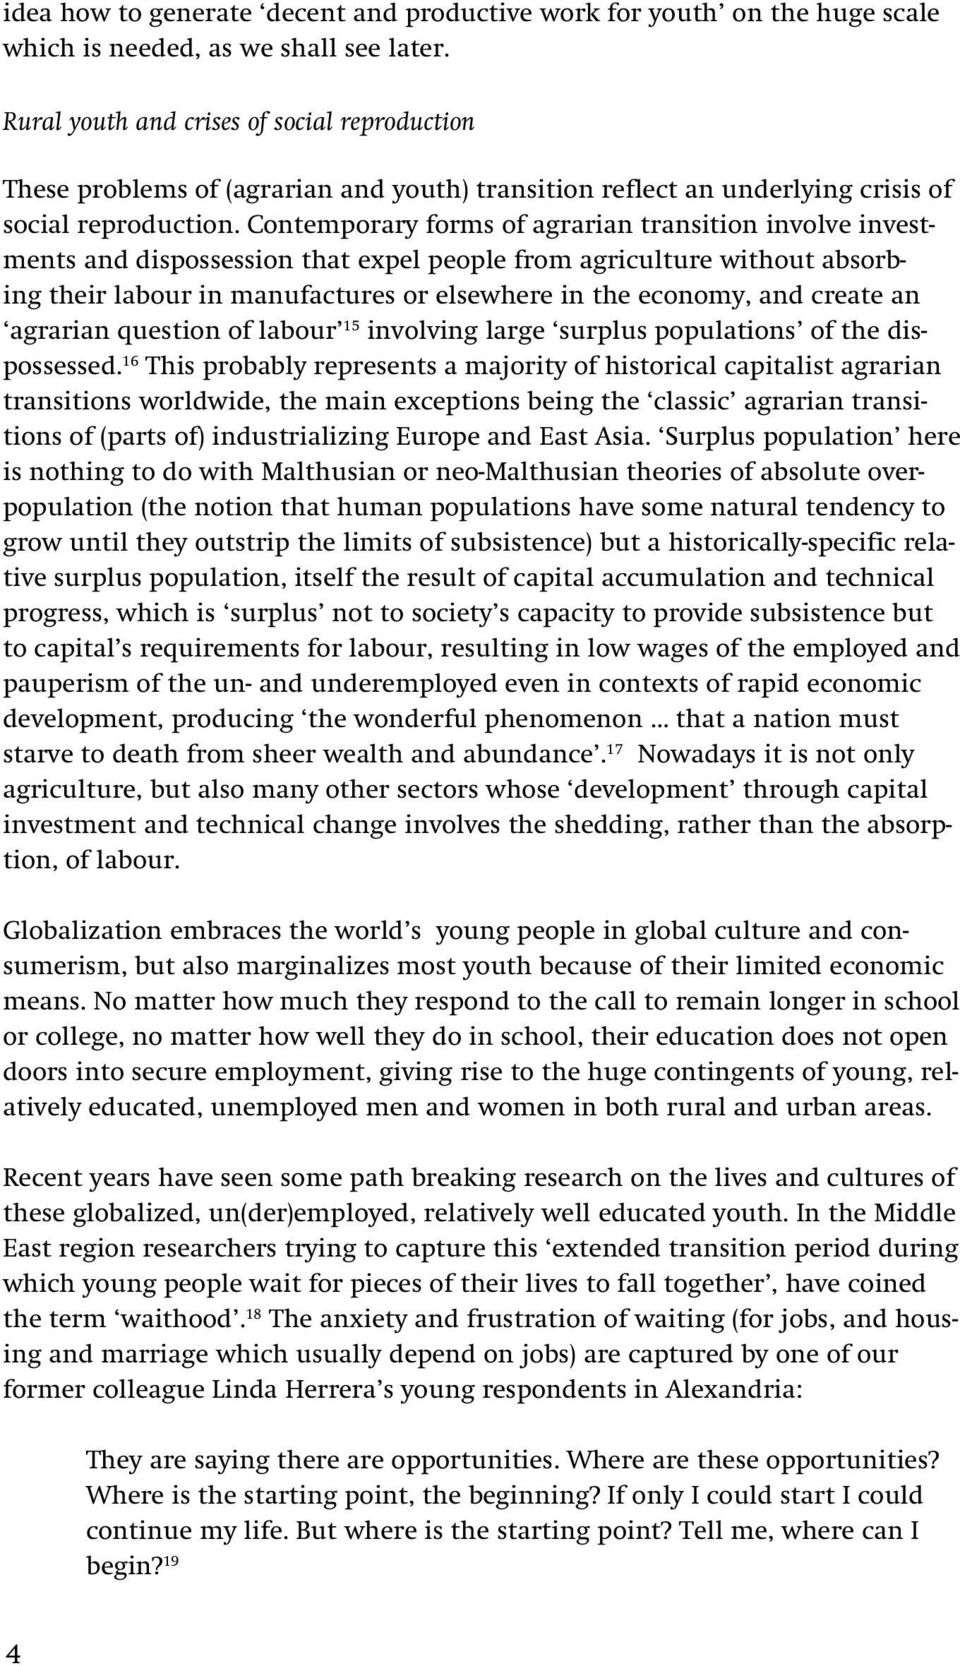 Contemporary forms of agrarian transition involve investments and dispossession that expel people from agriculture without absorbing their labour in manufactures or elsewhere in the economy, and